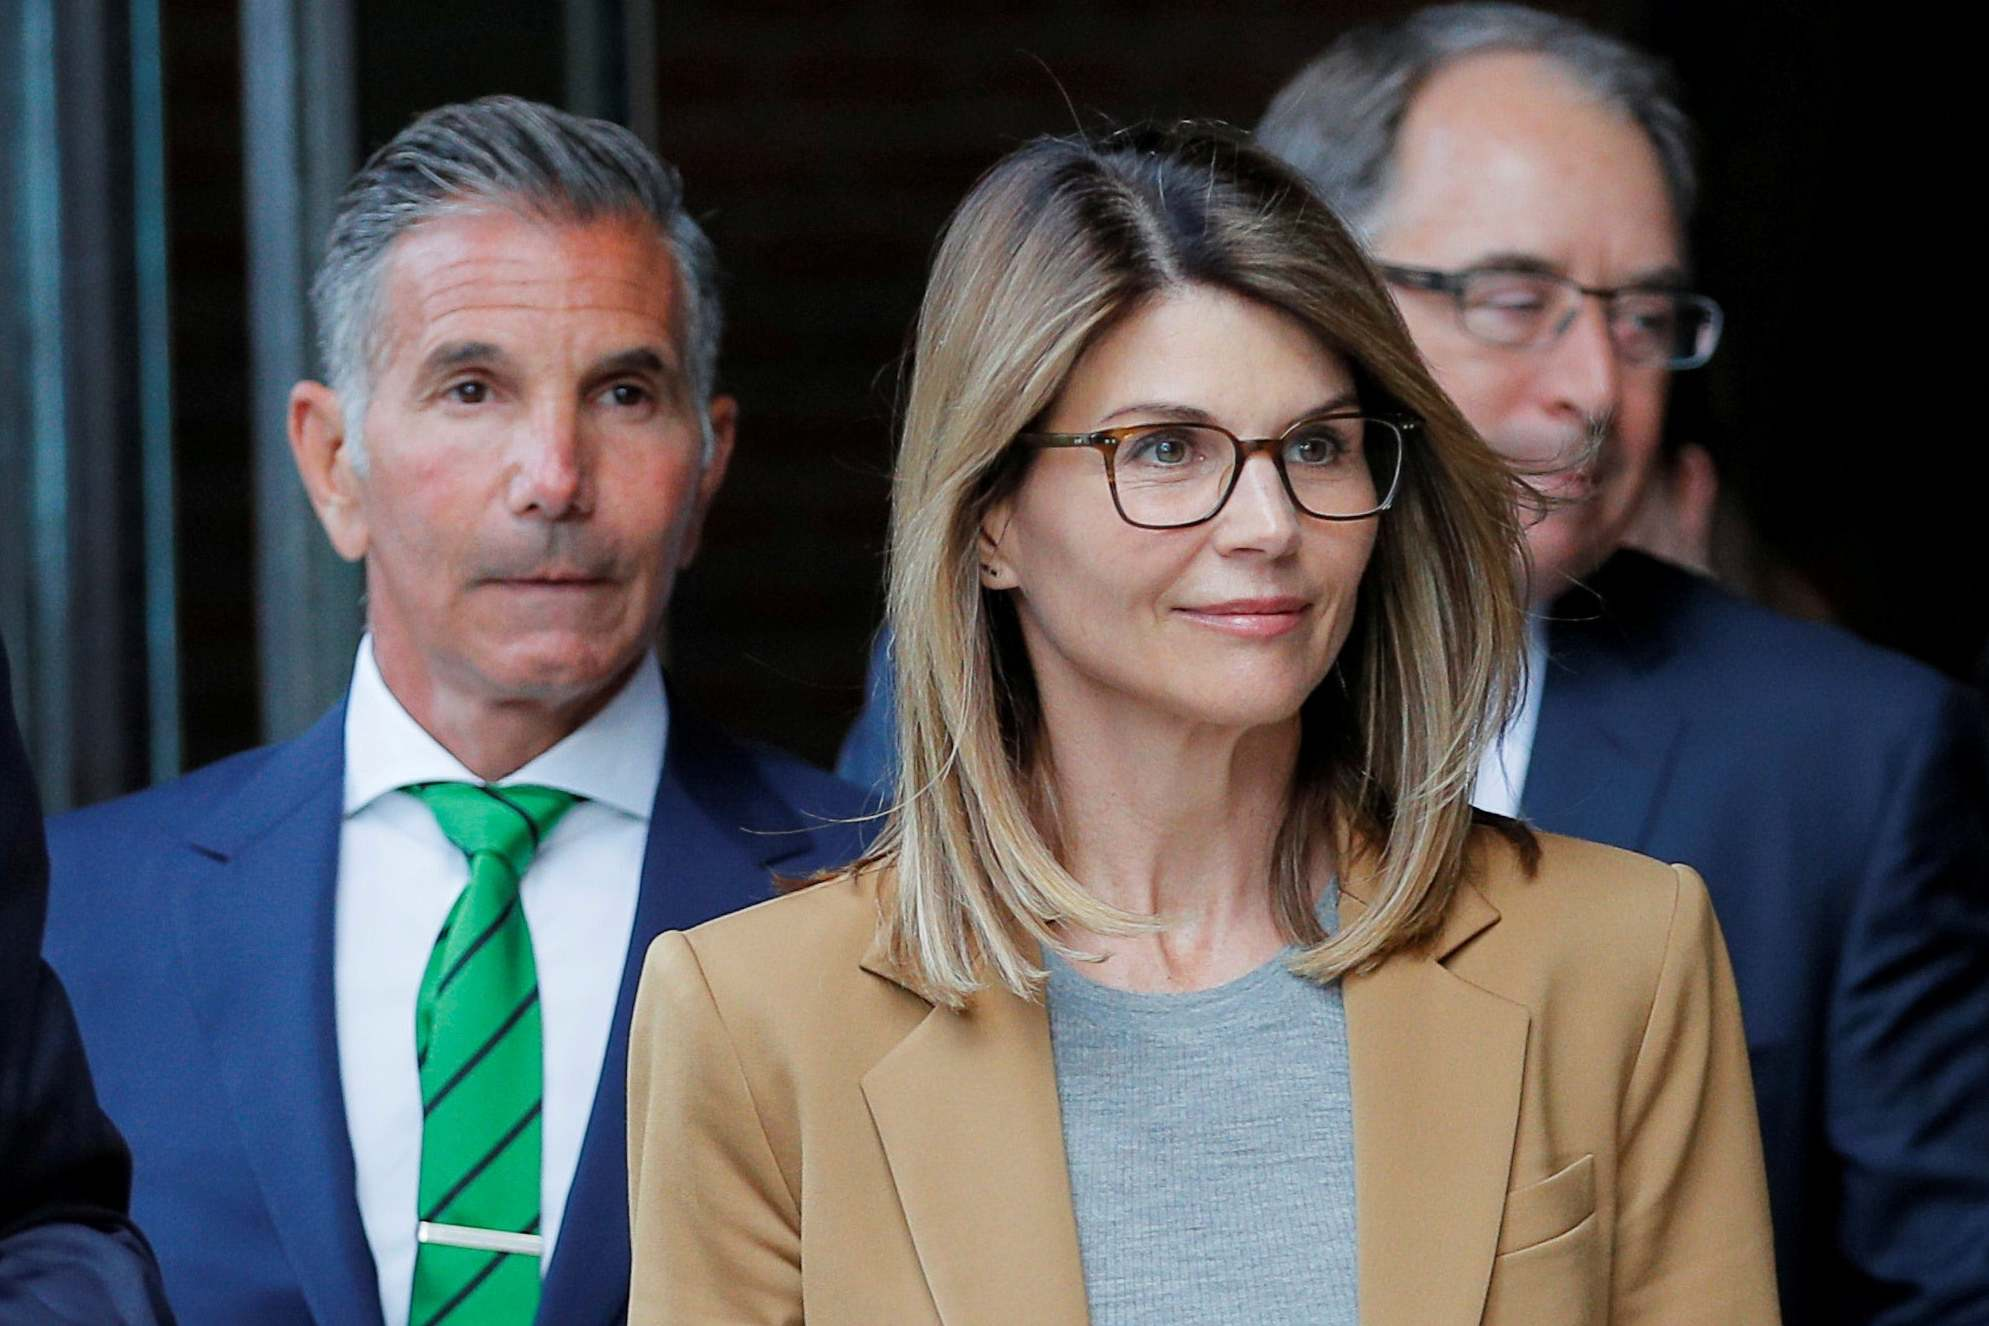 Lori Loughlin launched after serving detention center timeframe for college bribes scam